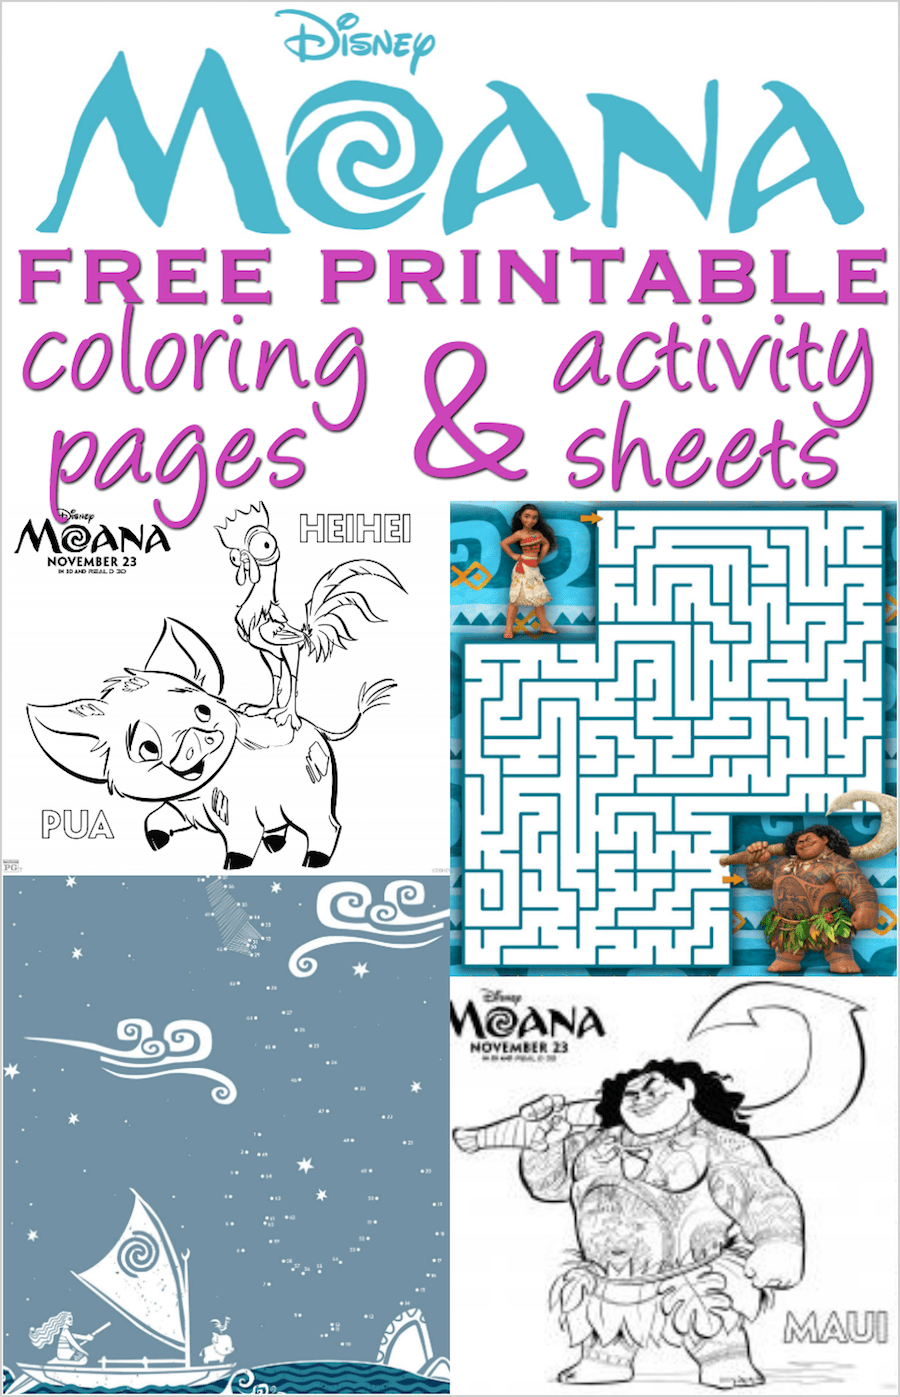 photo relating to Printable Moana named Moana coloring internet pages and match sheets - Earlier mentioned 30 totally free